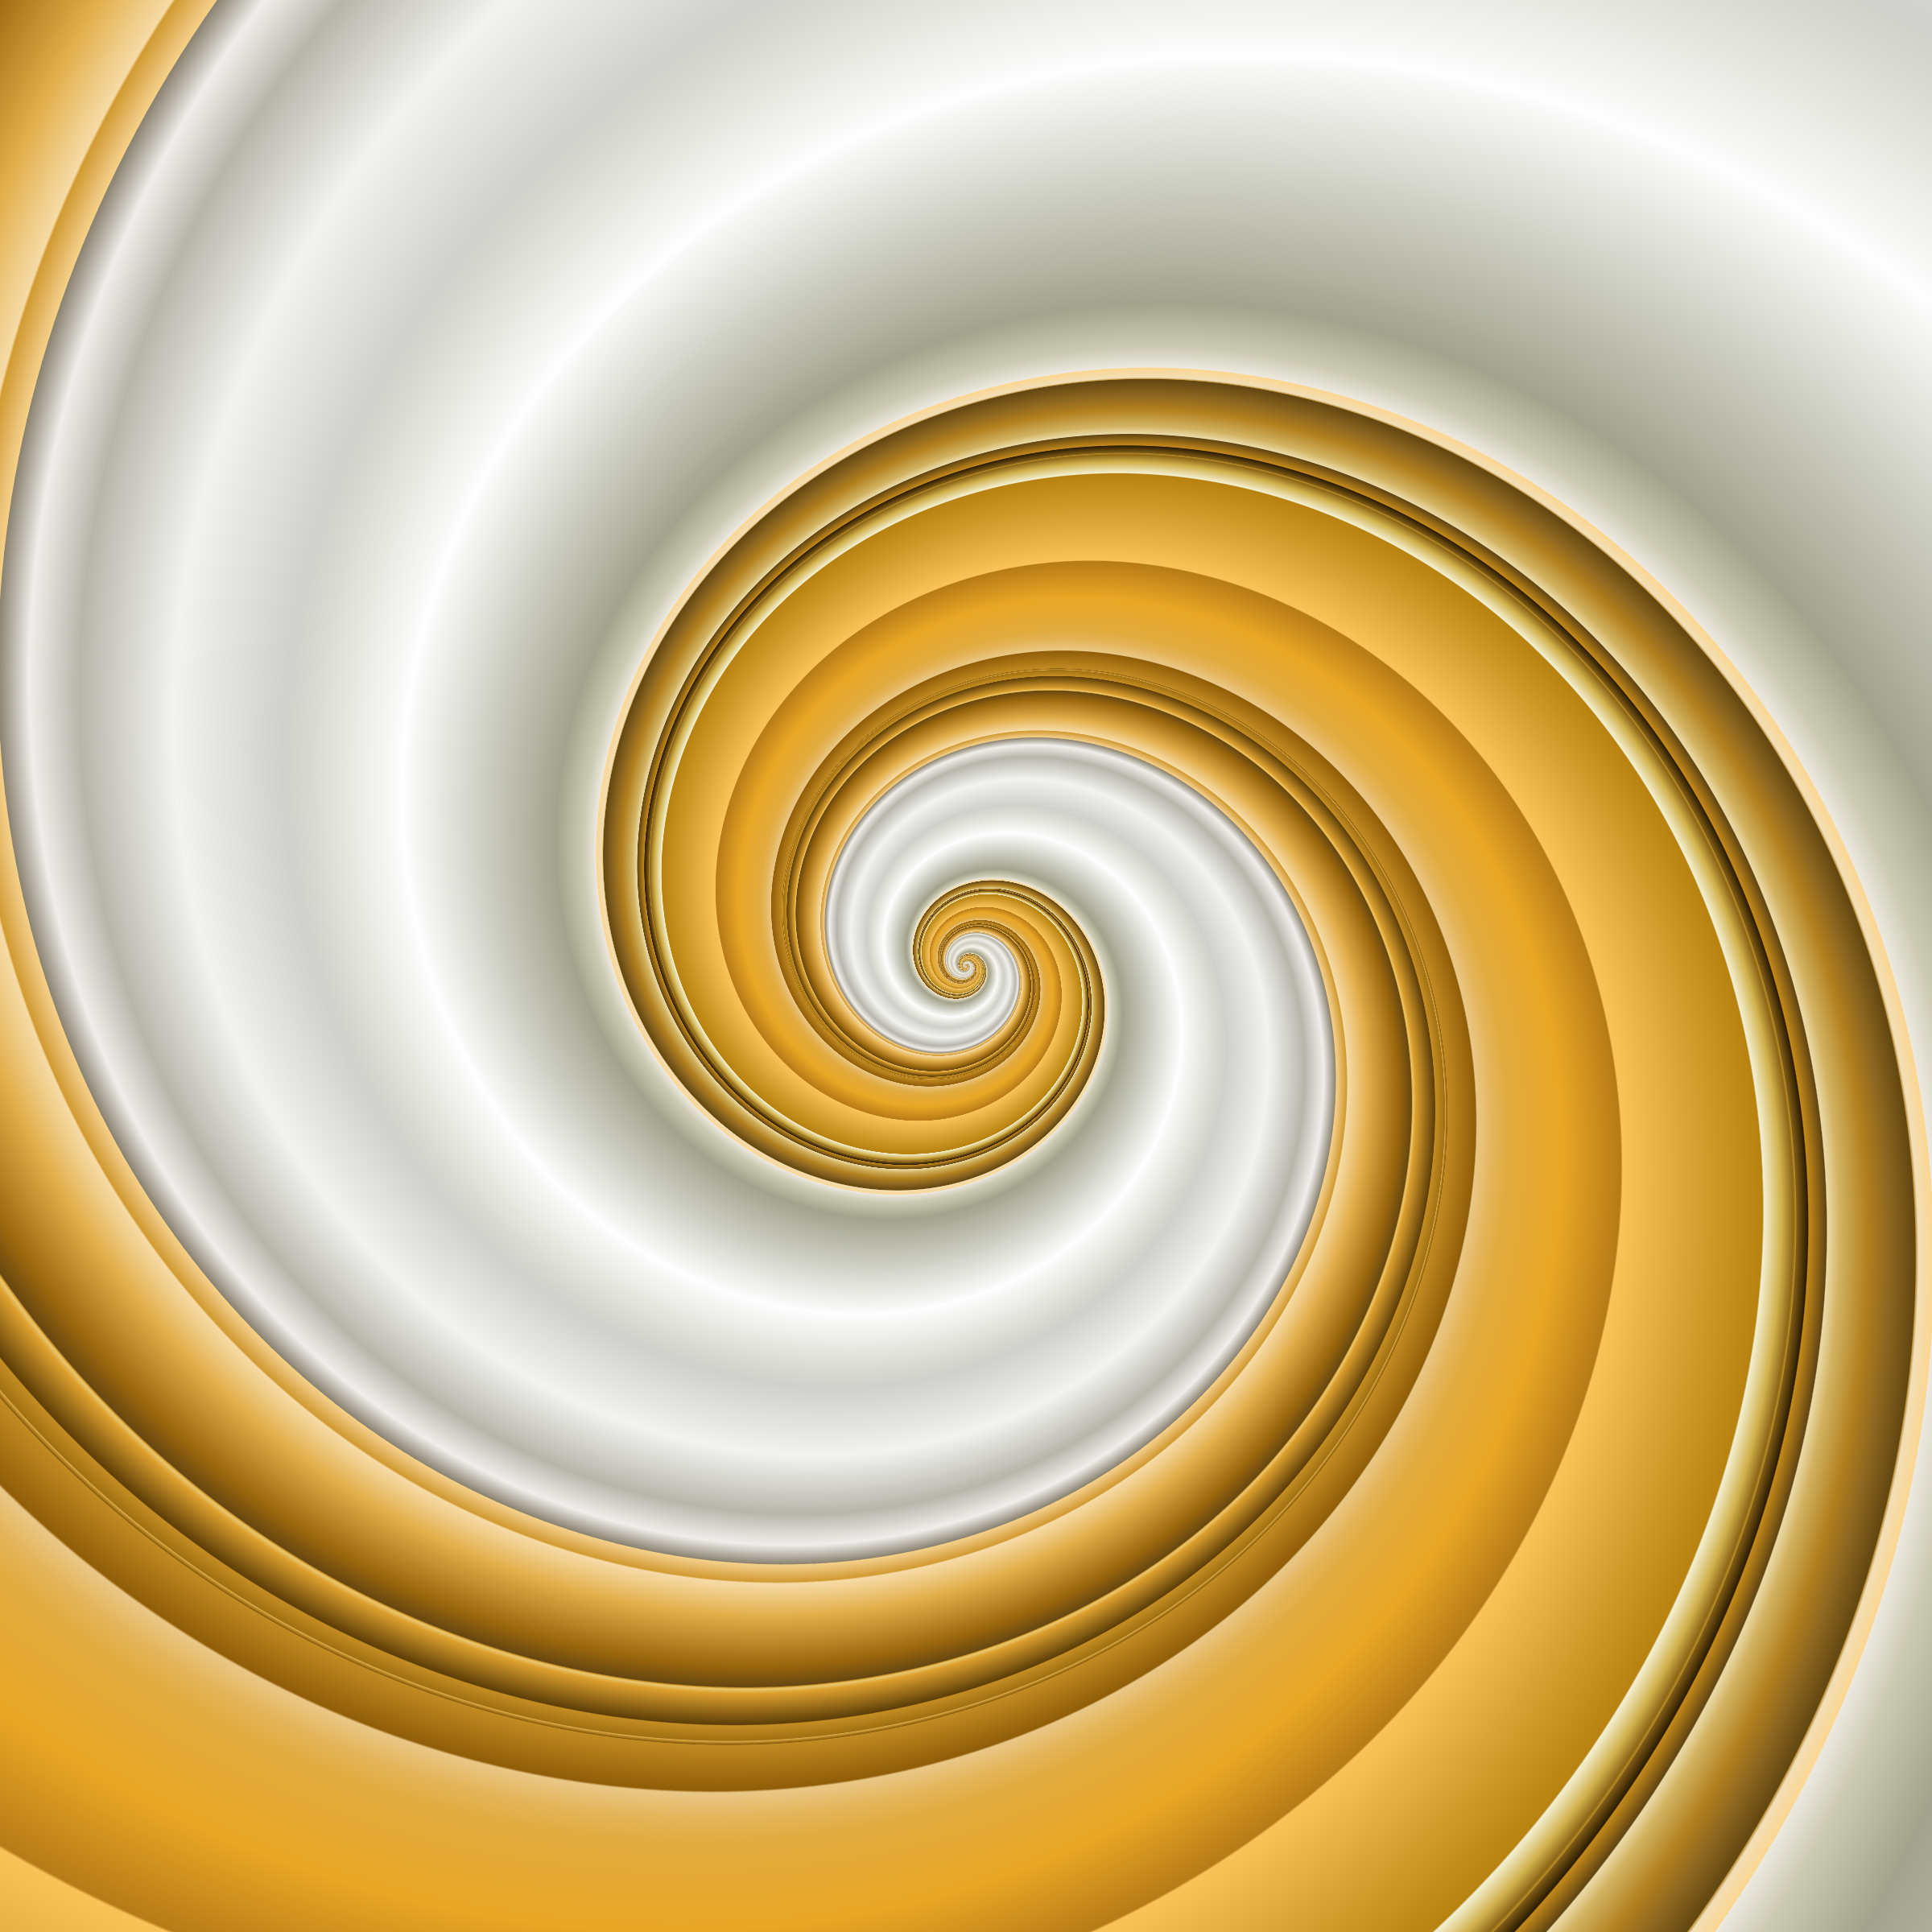 golden spiral 2 by Lazur URH